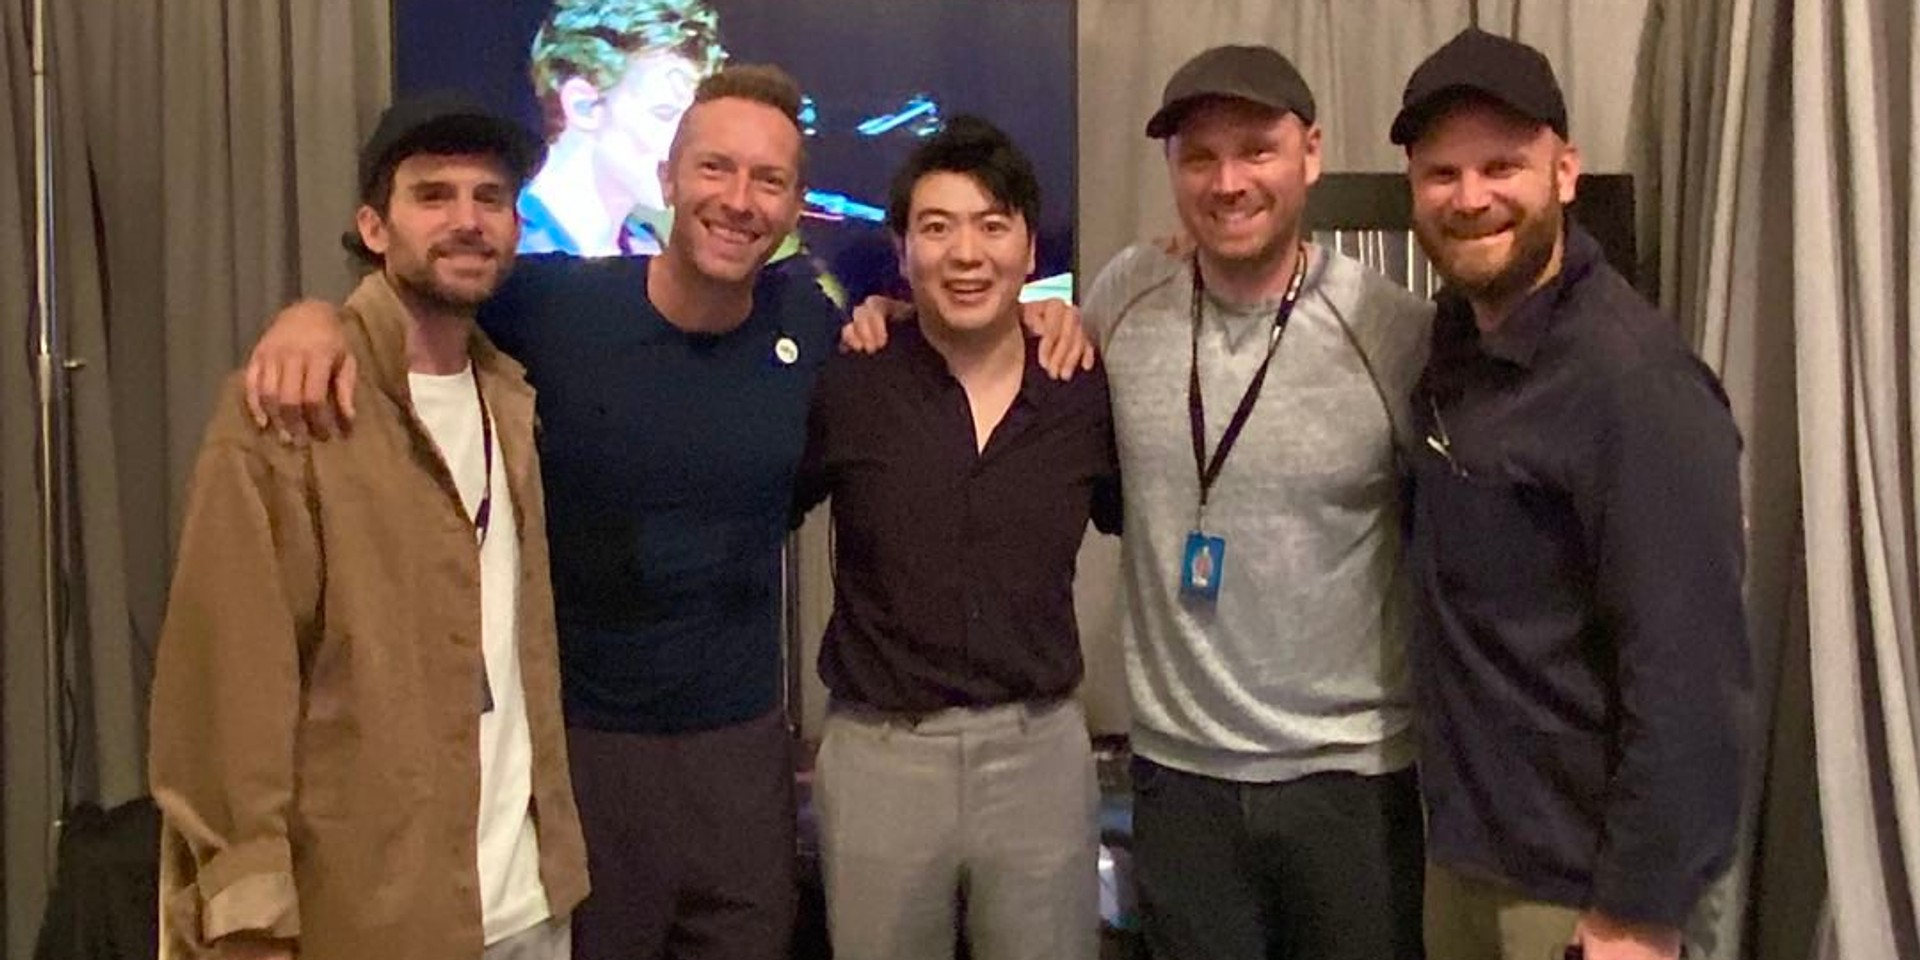 Chinese classical pianist Lang Lang joins Coldplay to perform 'Clocks' at Global Citizen Live 2021